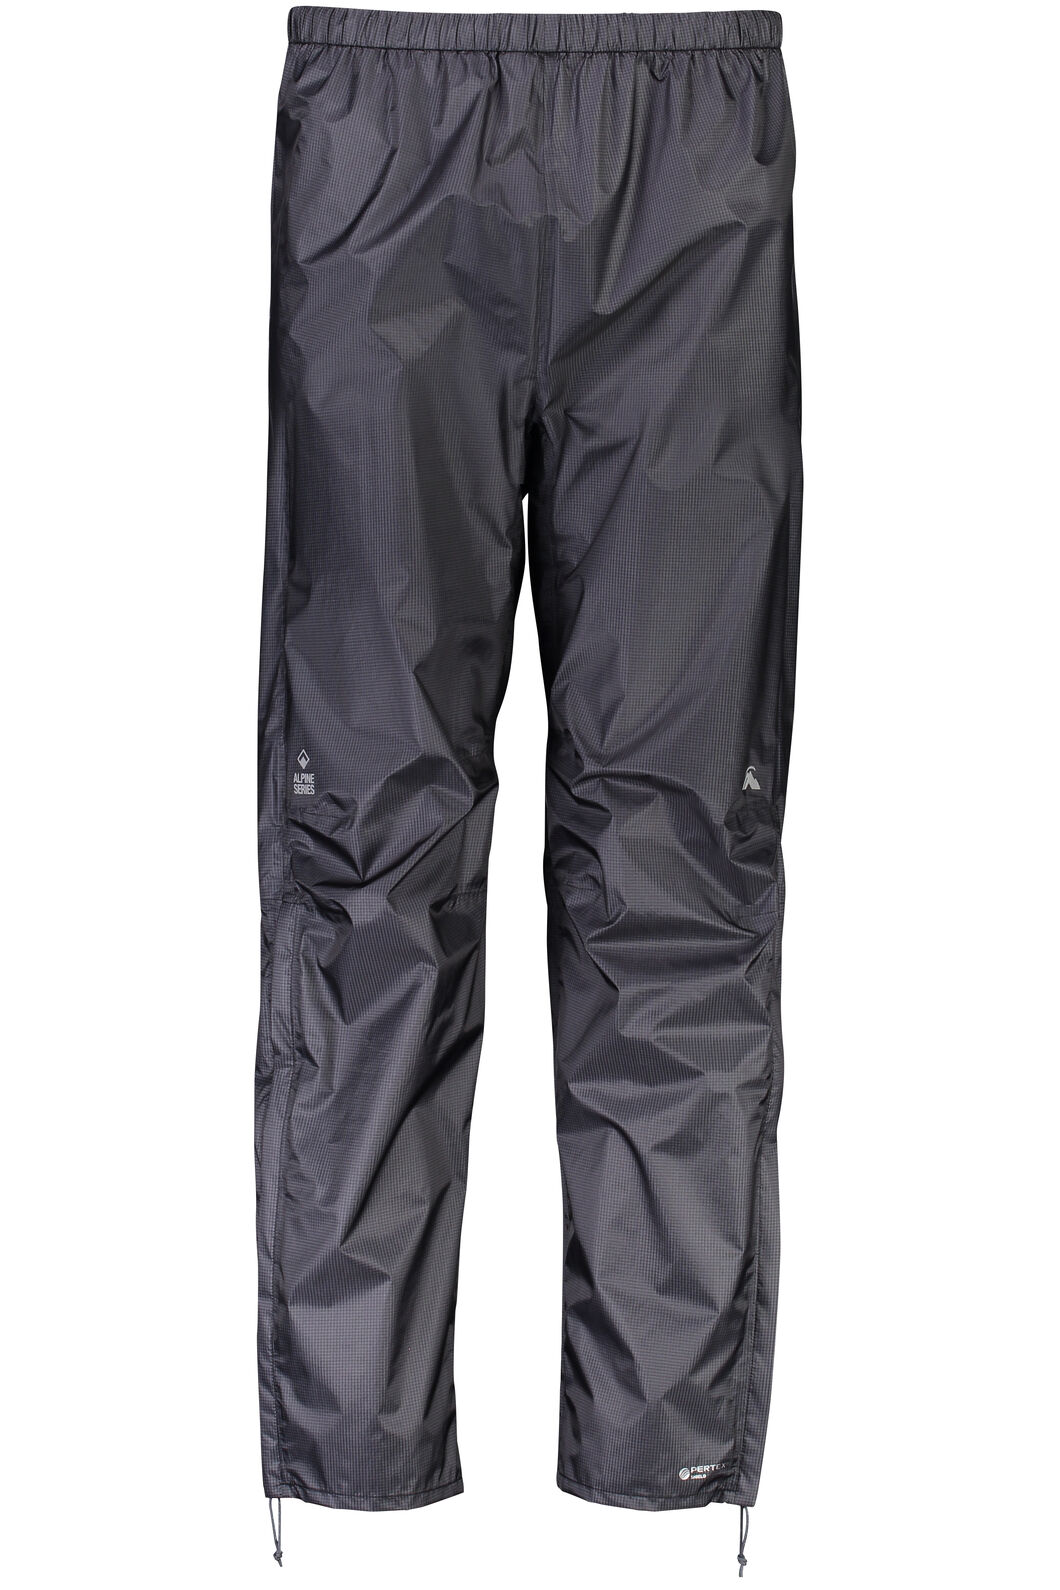 Macpac Hightail Pertex® Rain Pants — Men's, Black, hi-res